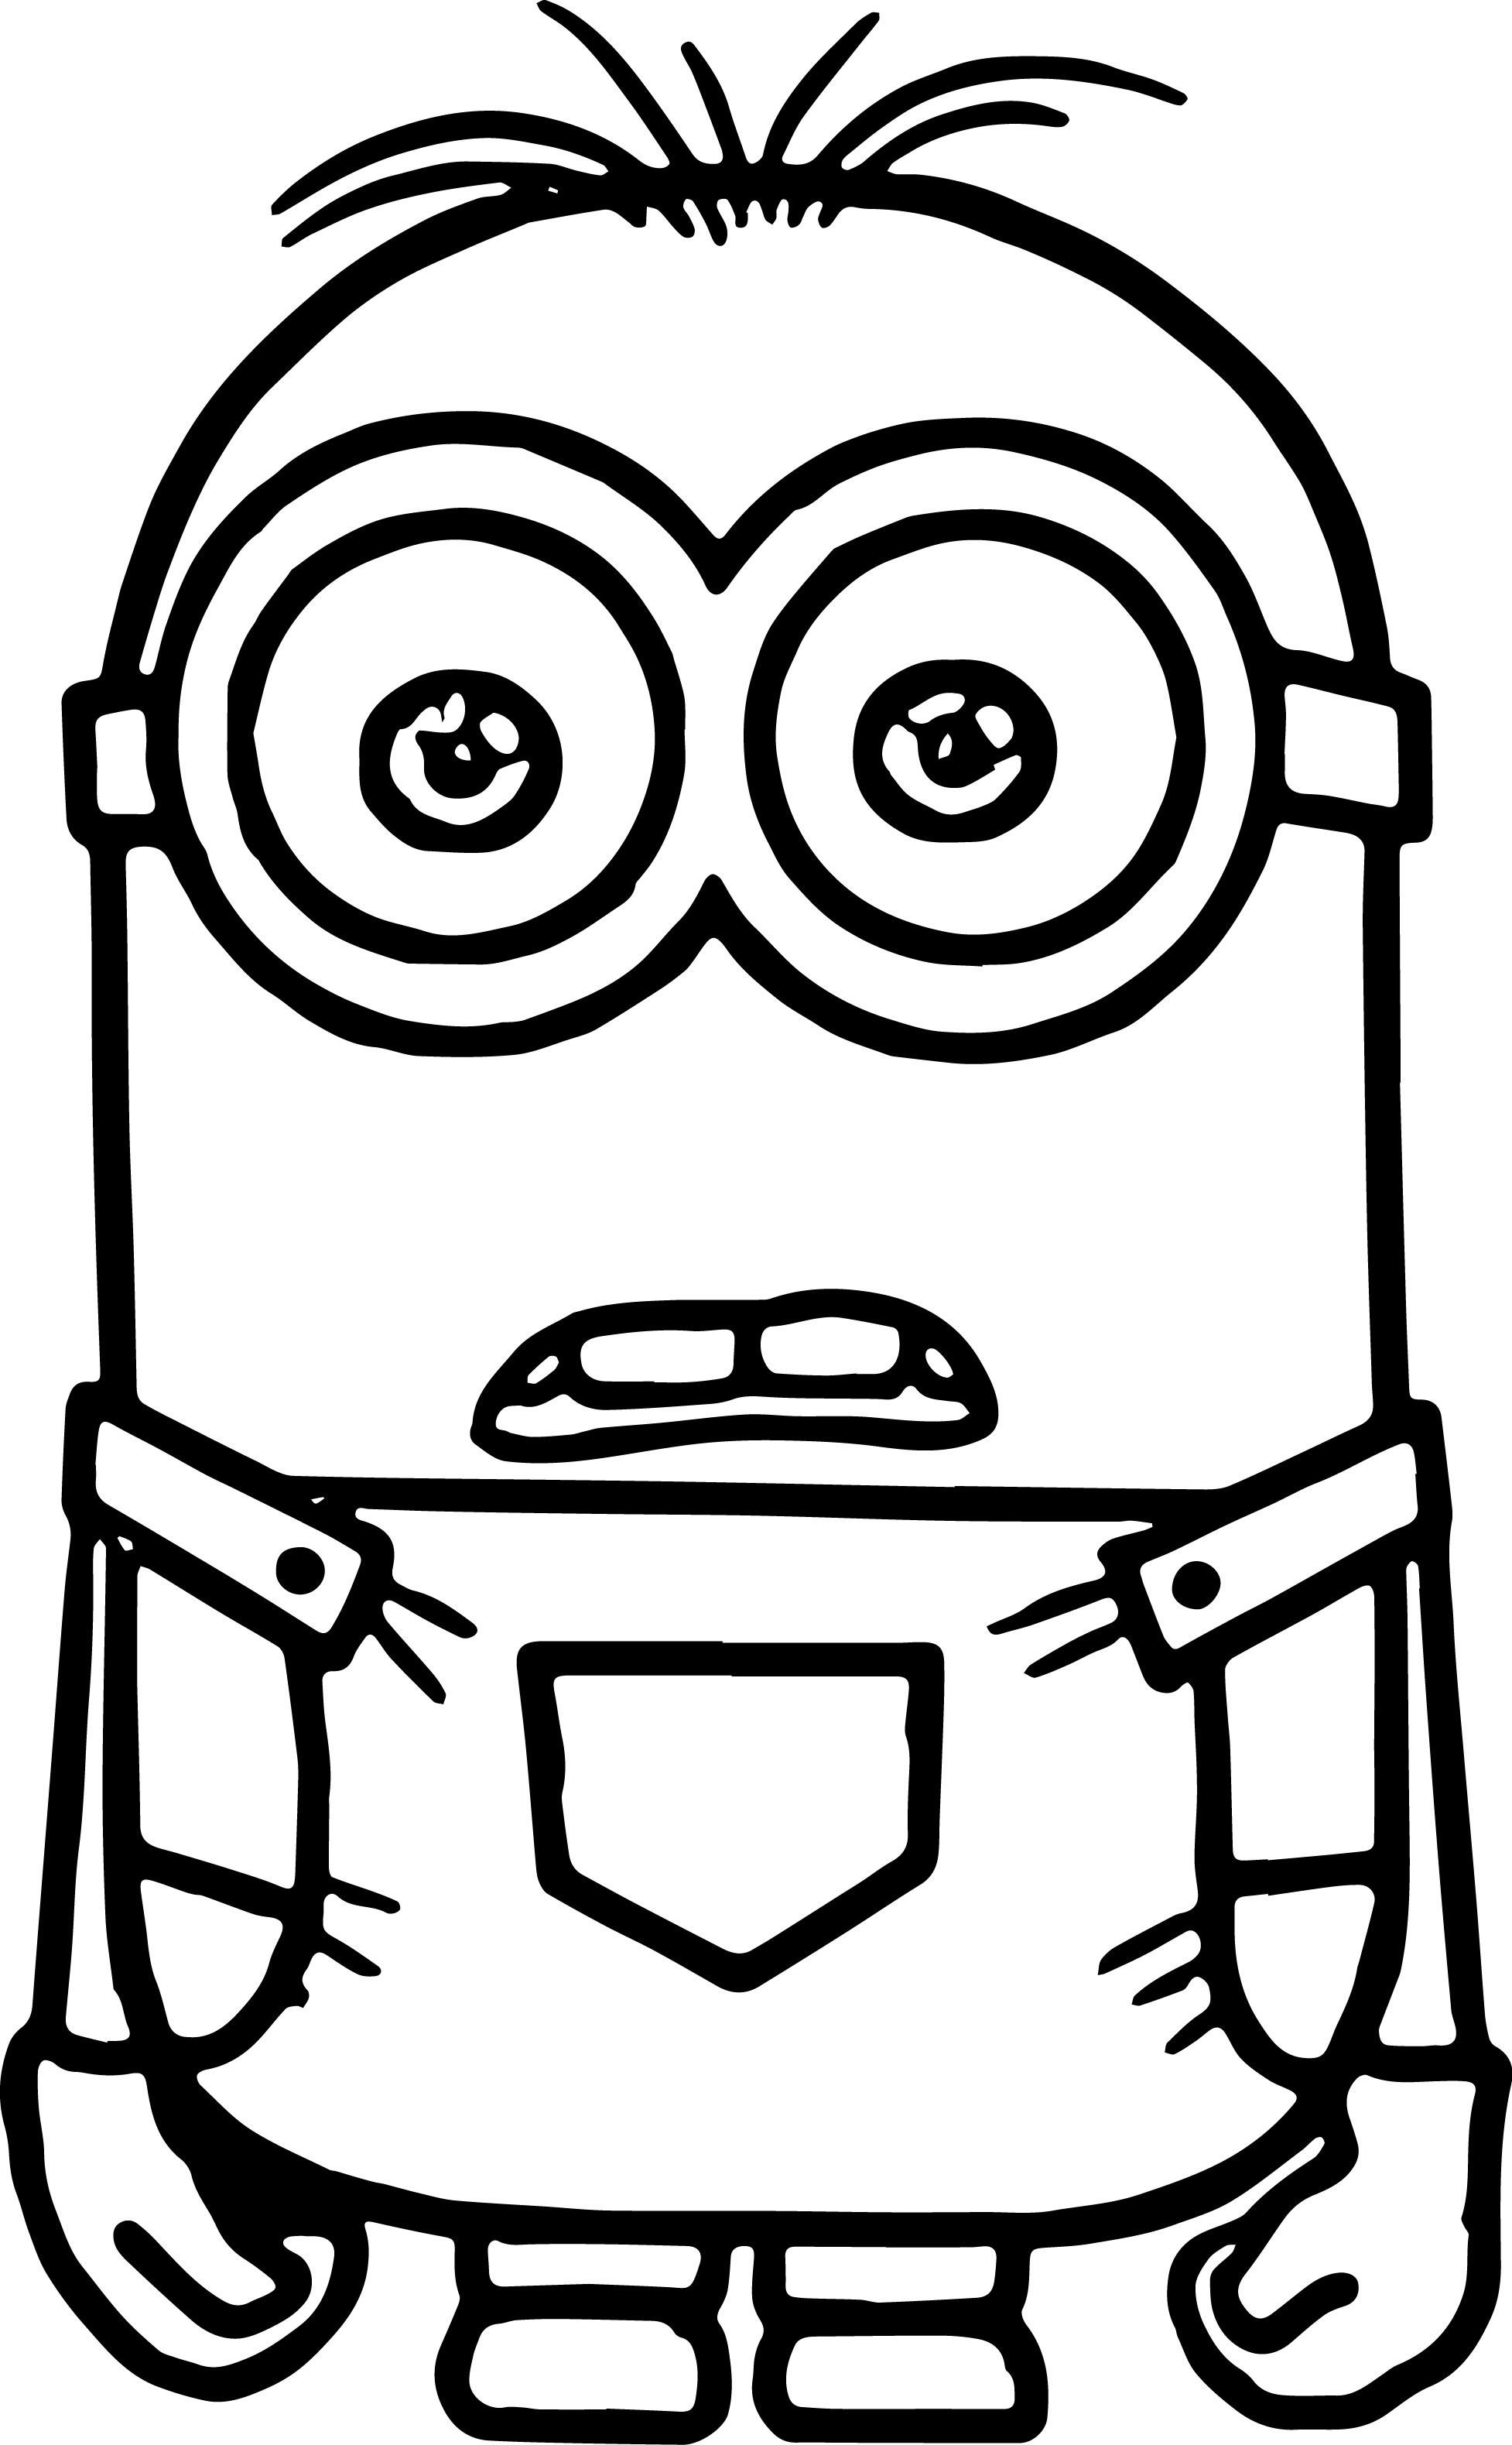 coloring picture to print minion coloring pages fotolipcom rich image and wallpaper coloring picture print to